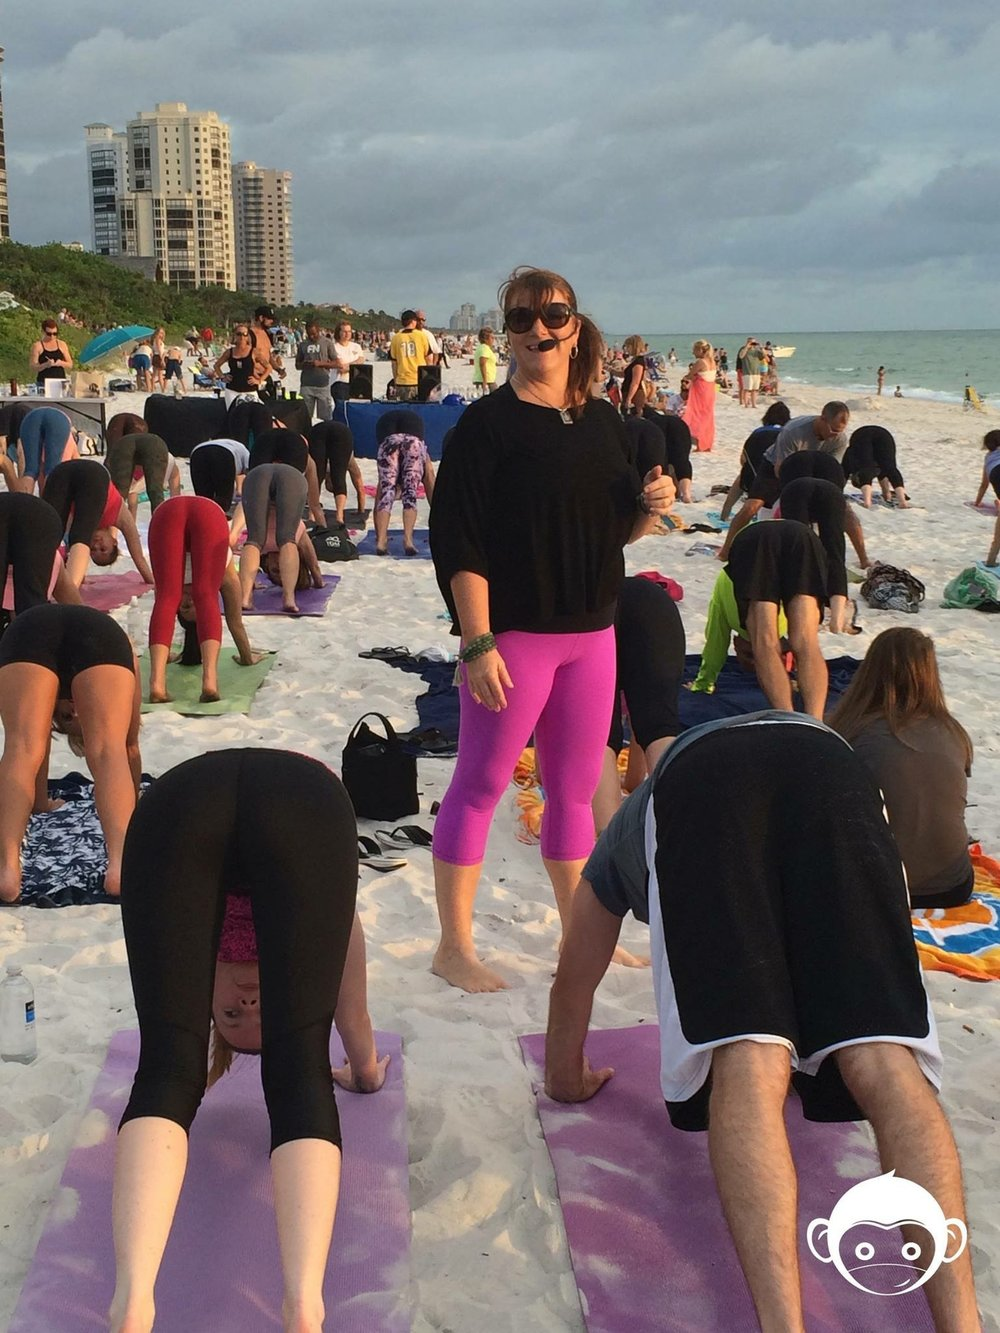 Community Beach Class To Raise Funds & Awareness for Wellfit Girls